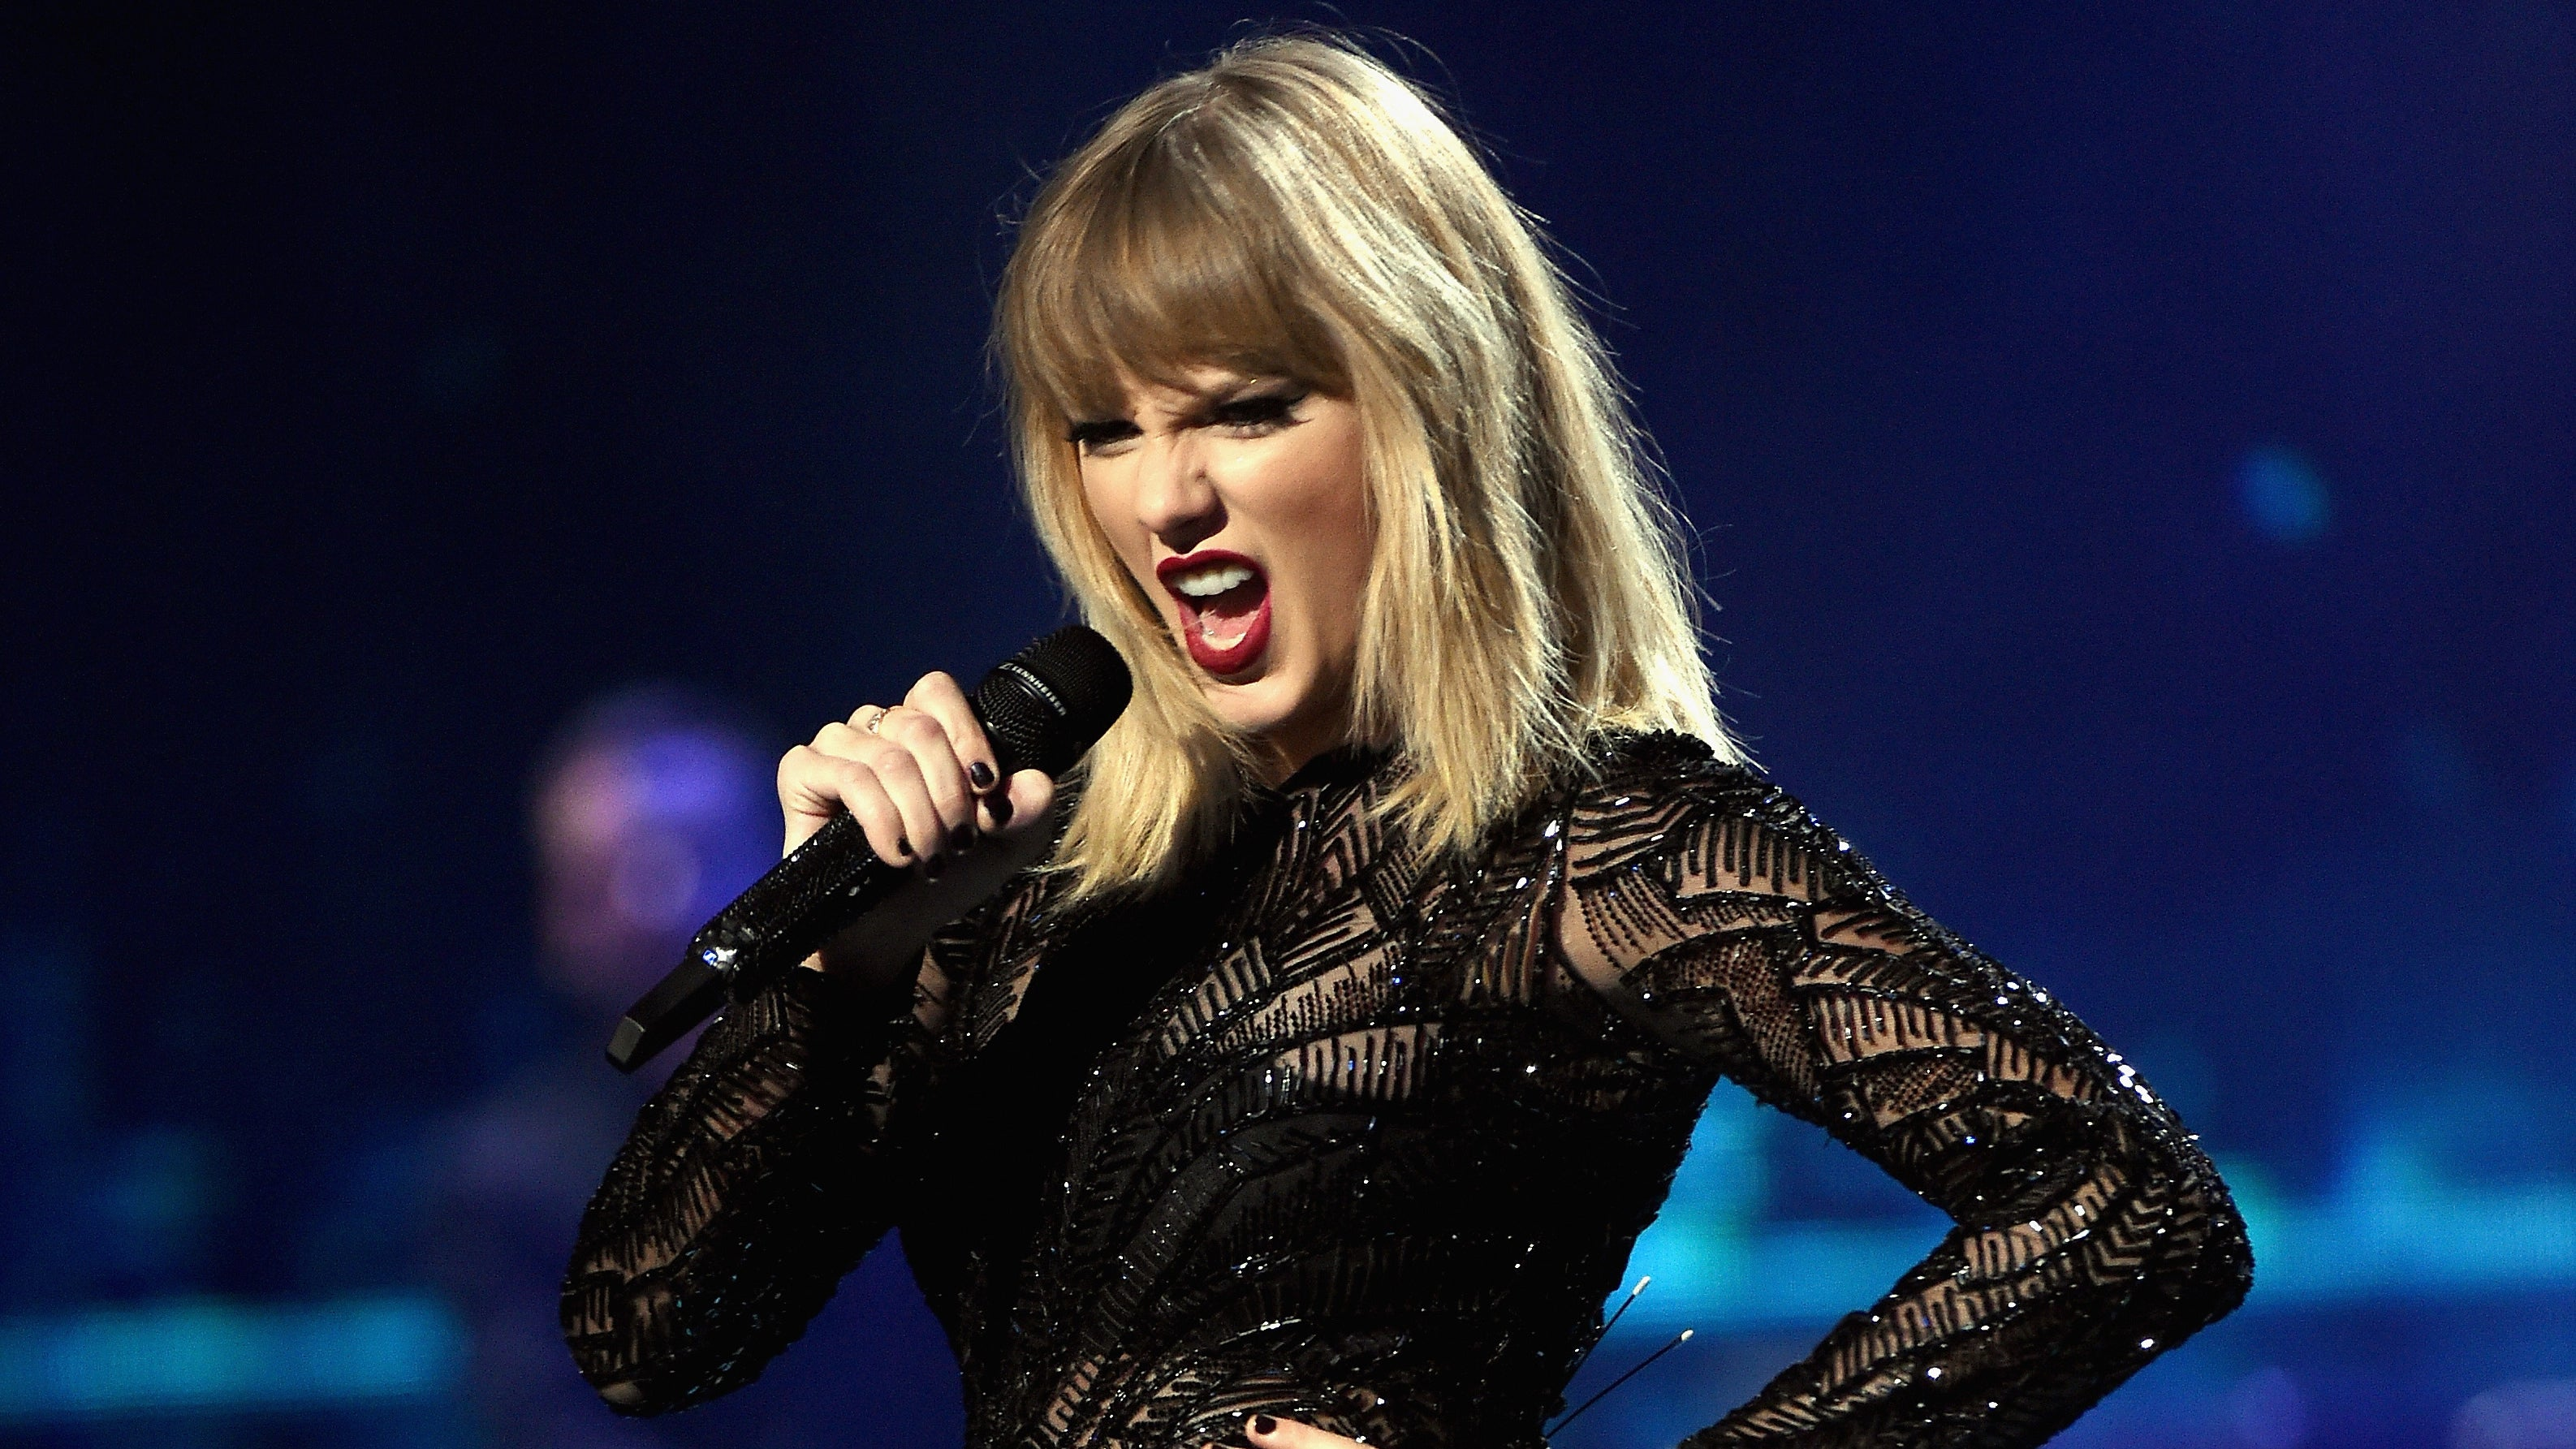 Video: Taylor Swift Drunk On Stage